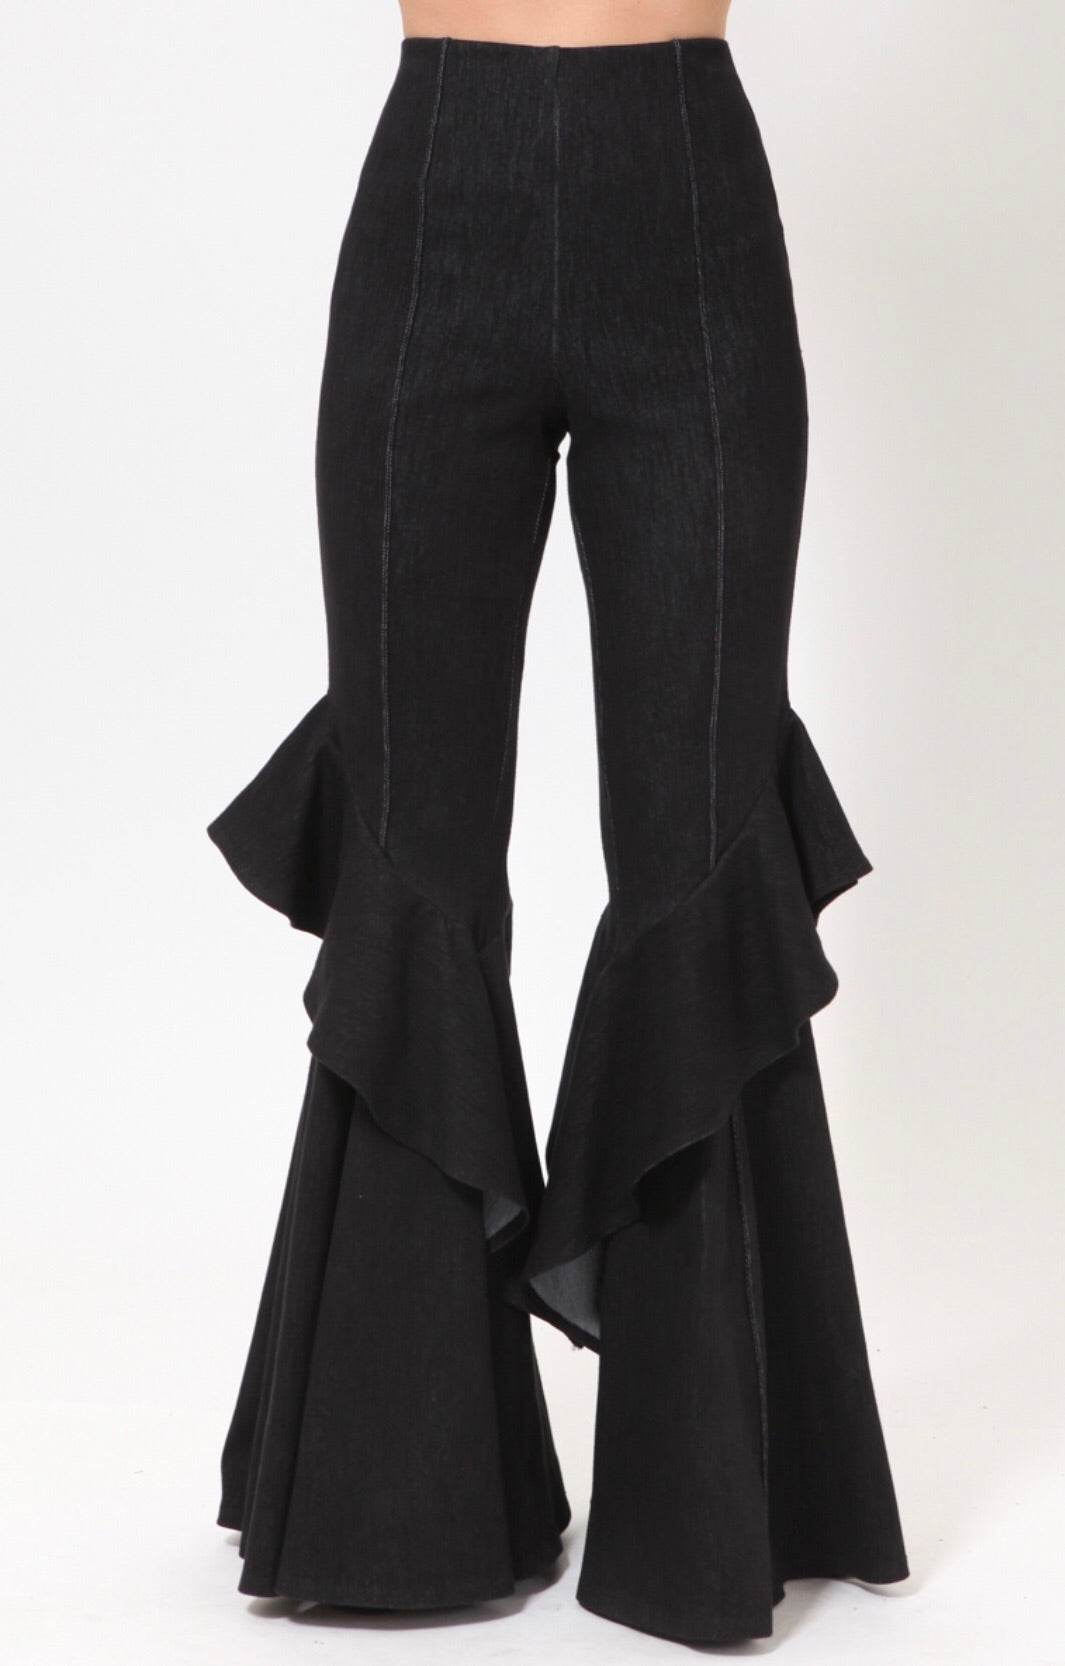 Black High Waist Stretch Ruffle Pants